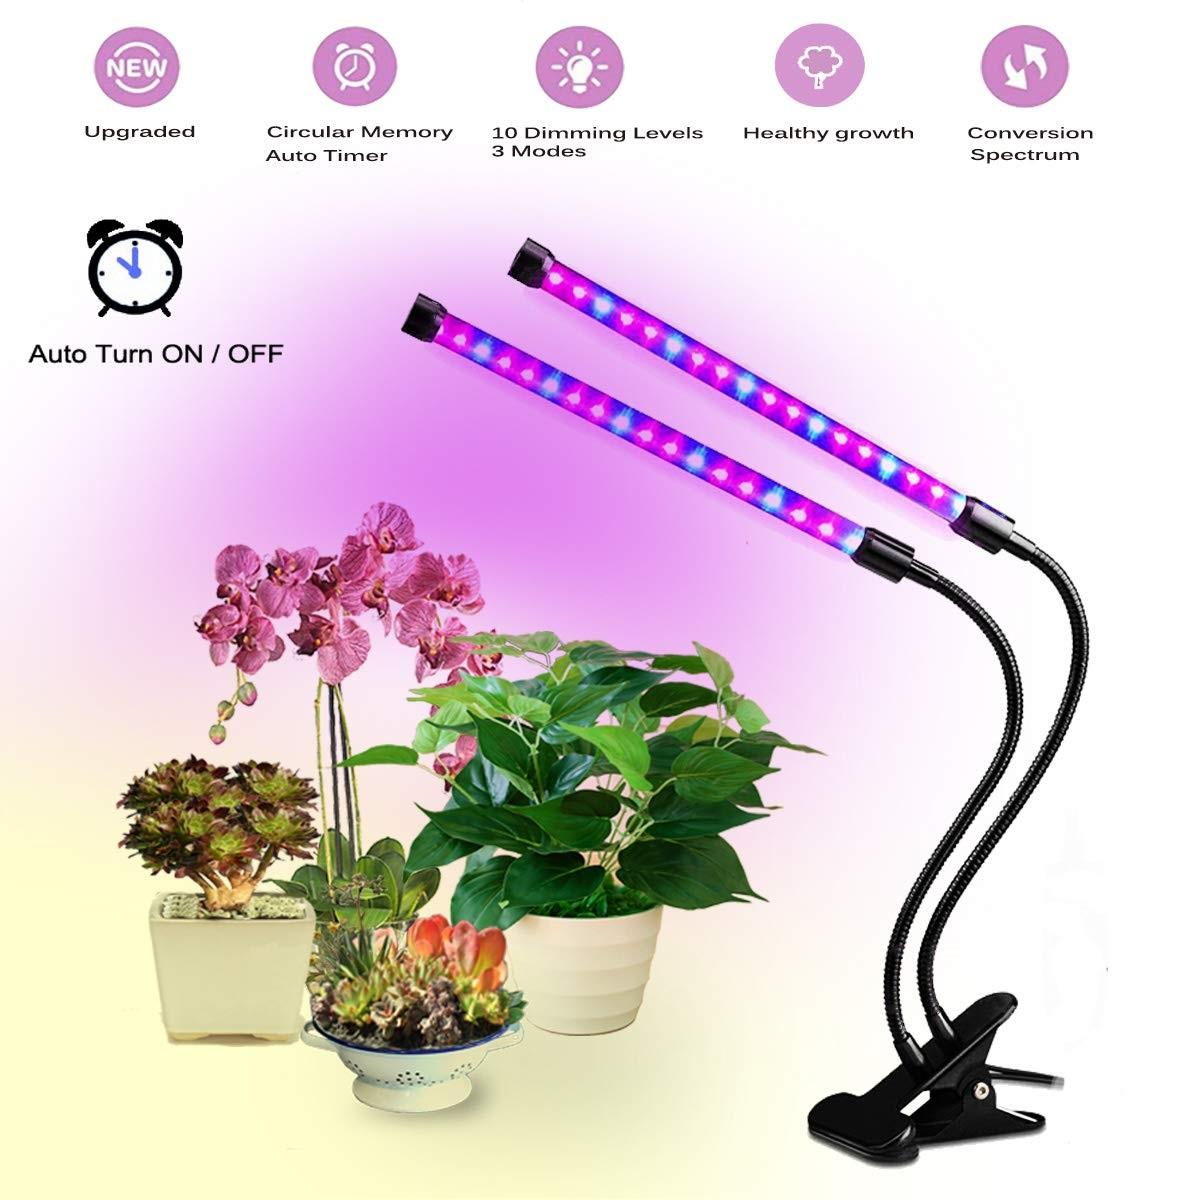 18W Dual Head Plant Grow Light Red Blue LED with 24 Hours Cycle Automatic Turn On Off Memory Timer Function, Flexible 360 Degree Clip On Gooseneck with Brightness Control, Universal USB 3A Low Power